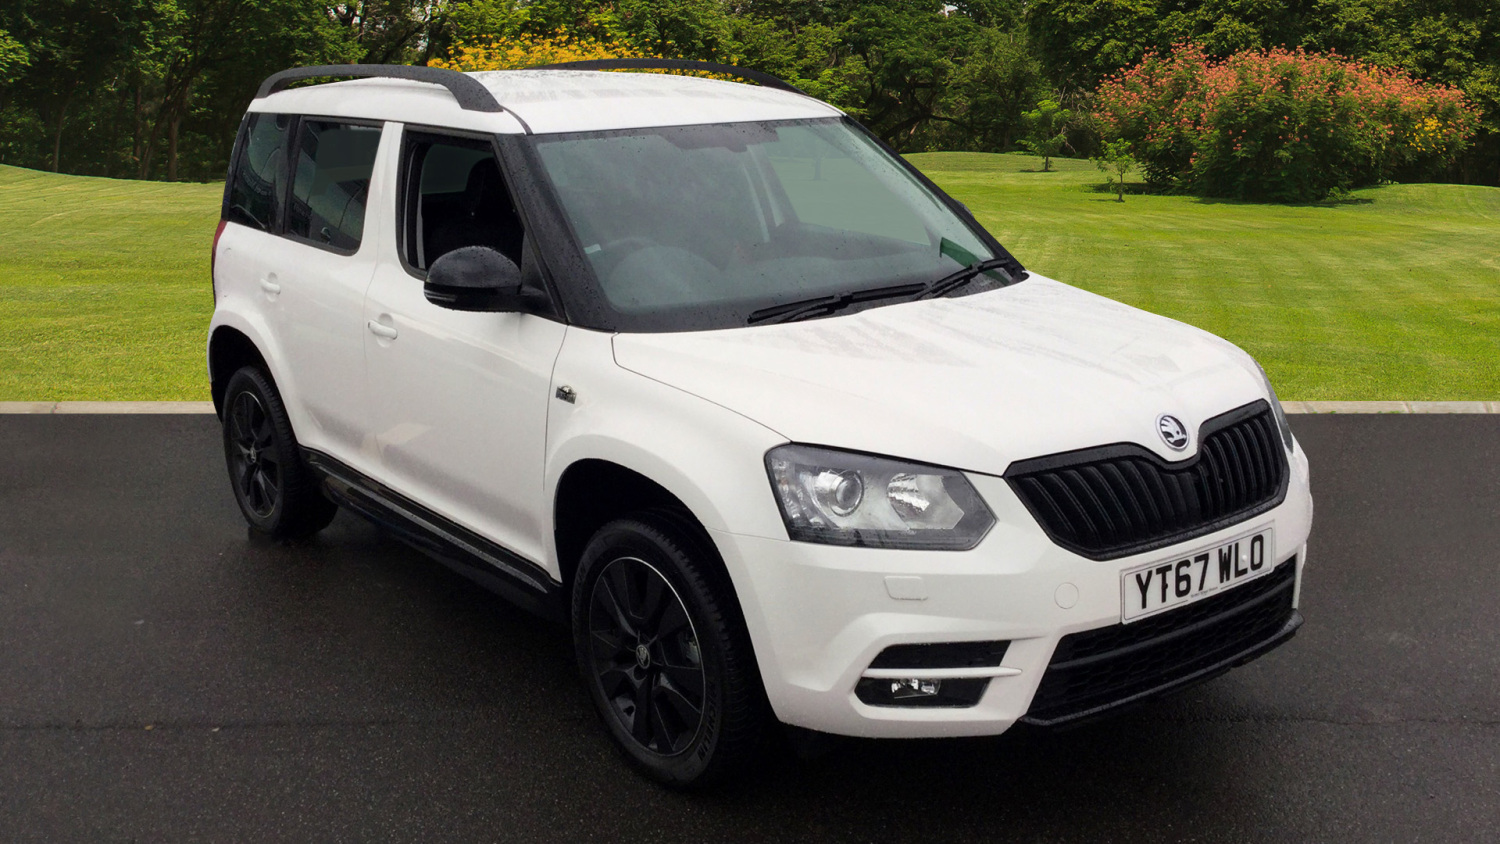 used skoda yeti 2 0 tdi cr 150 monte carlo 4x4 5dr dsg diesel estate for sale bristol street. Black Bedroom Furniture Sets. Home Design Ideas